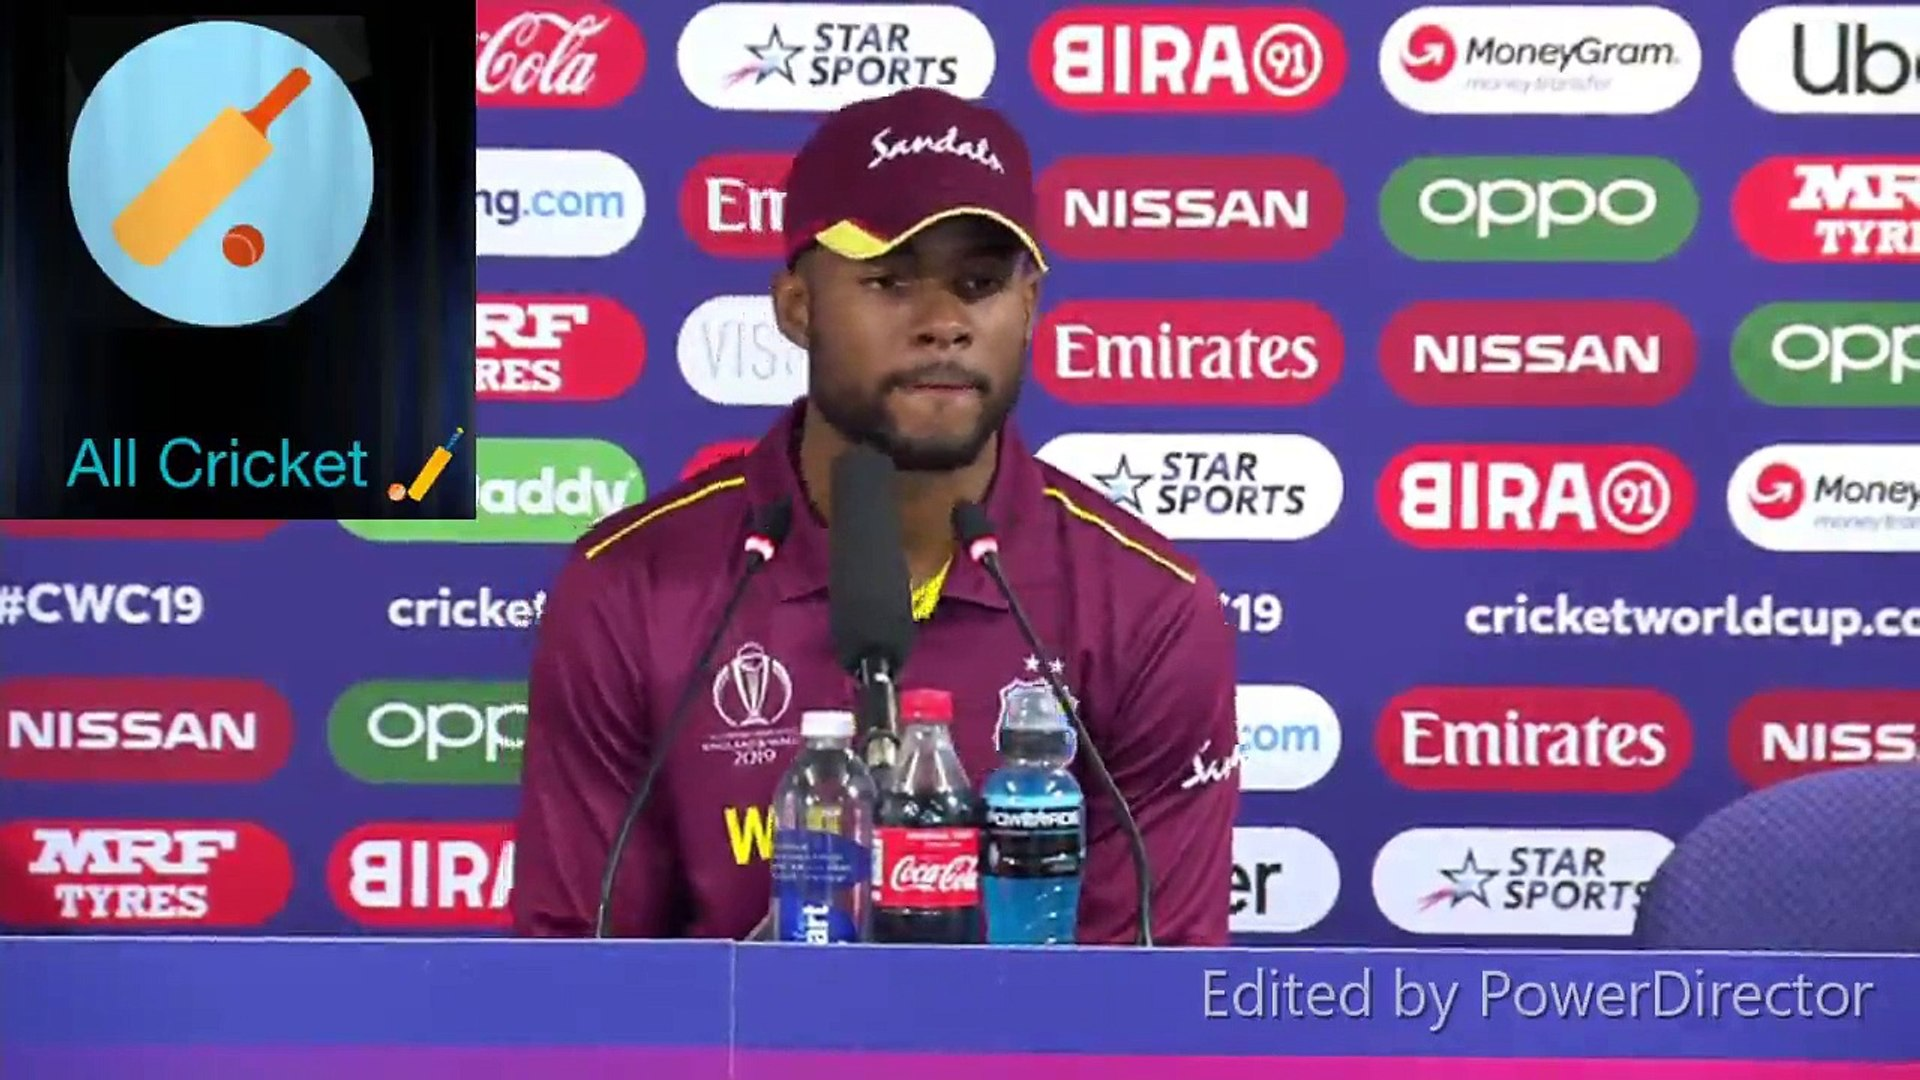 We let teams take away games from us - Shai Hope | WI | AFG Vs Wi | ICC Cricket World Cup 2019We let